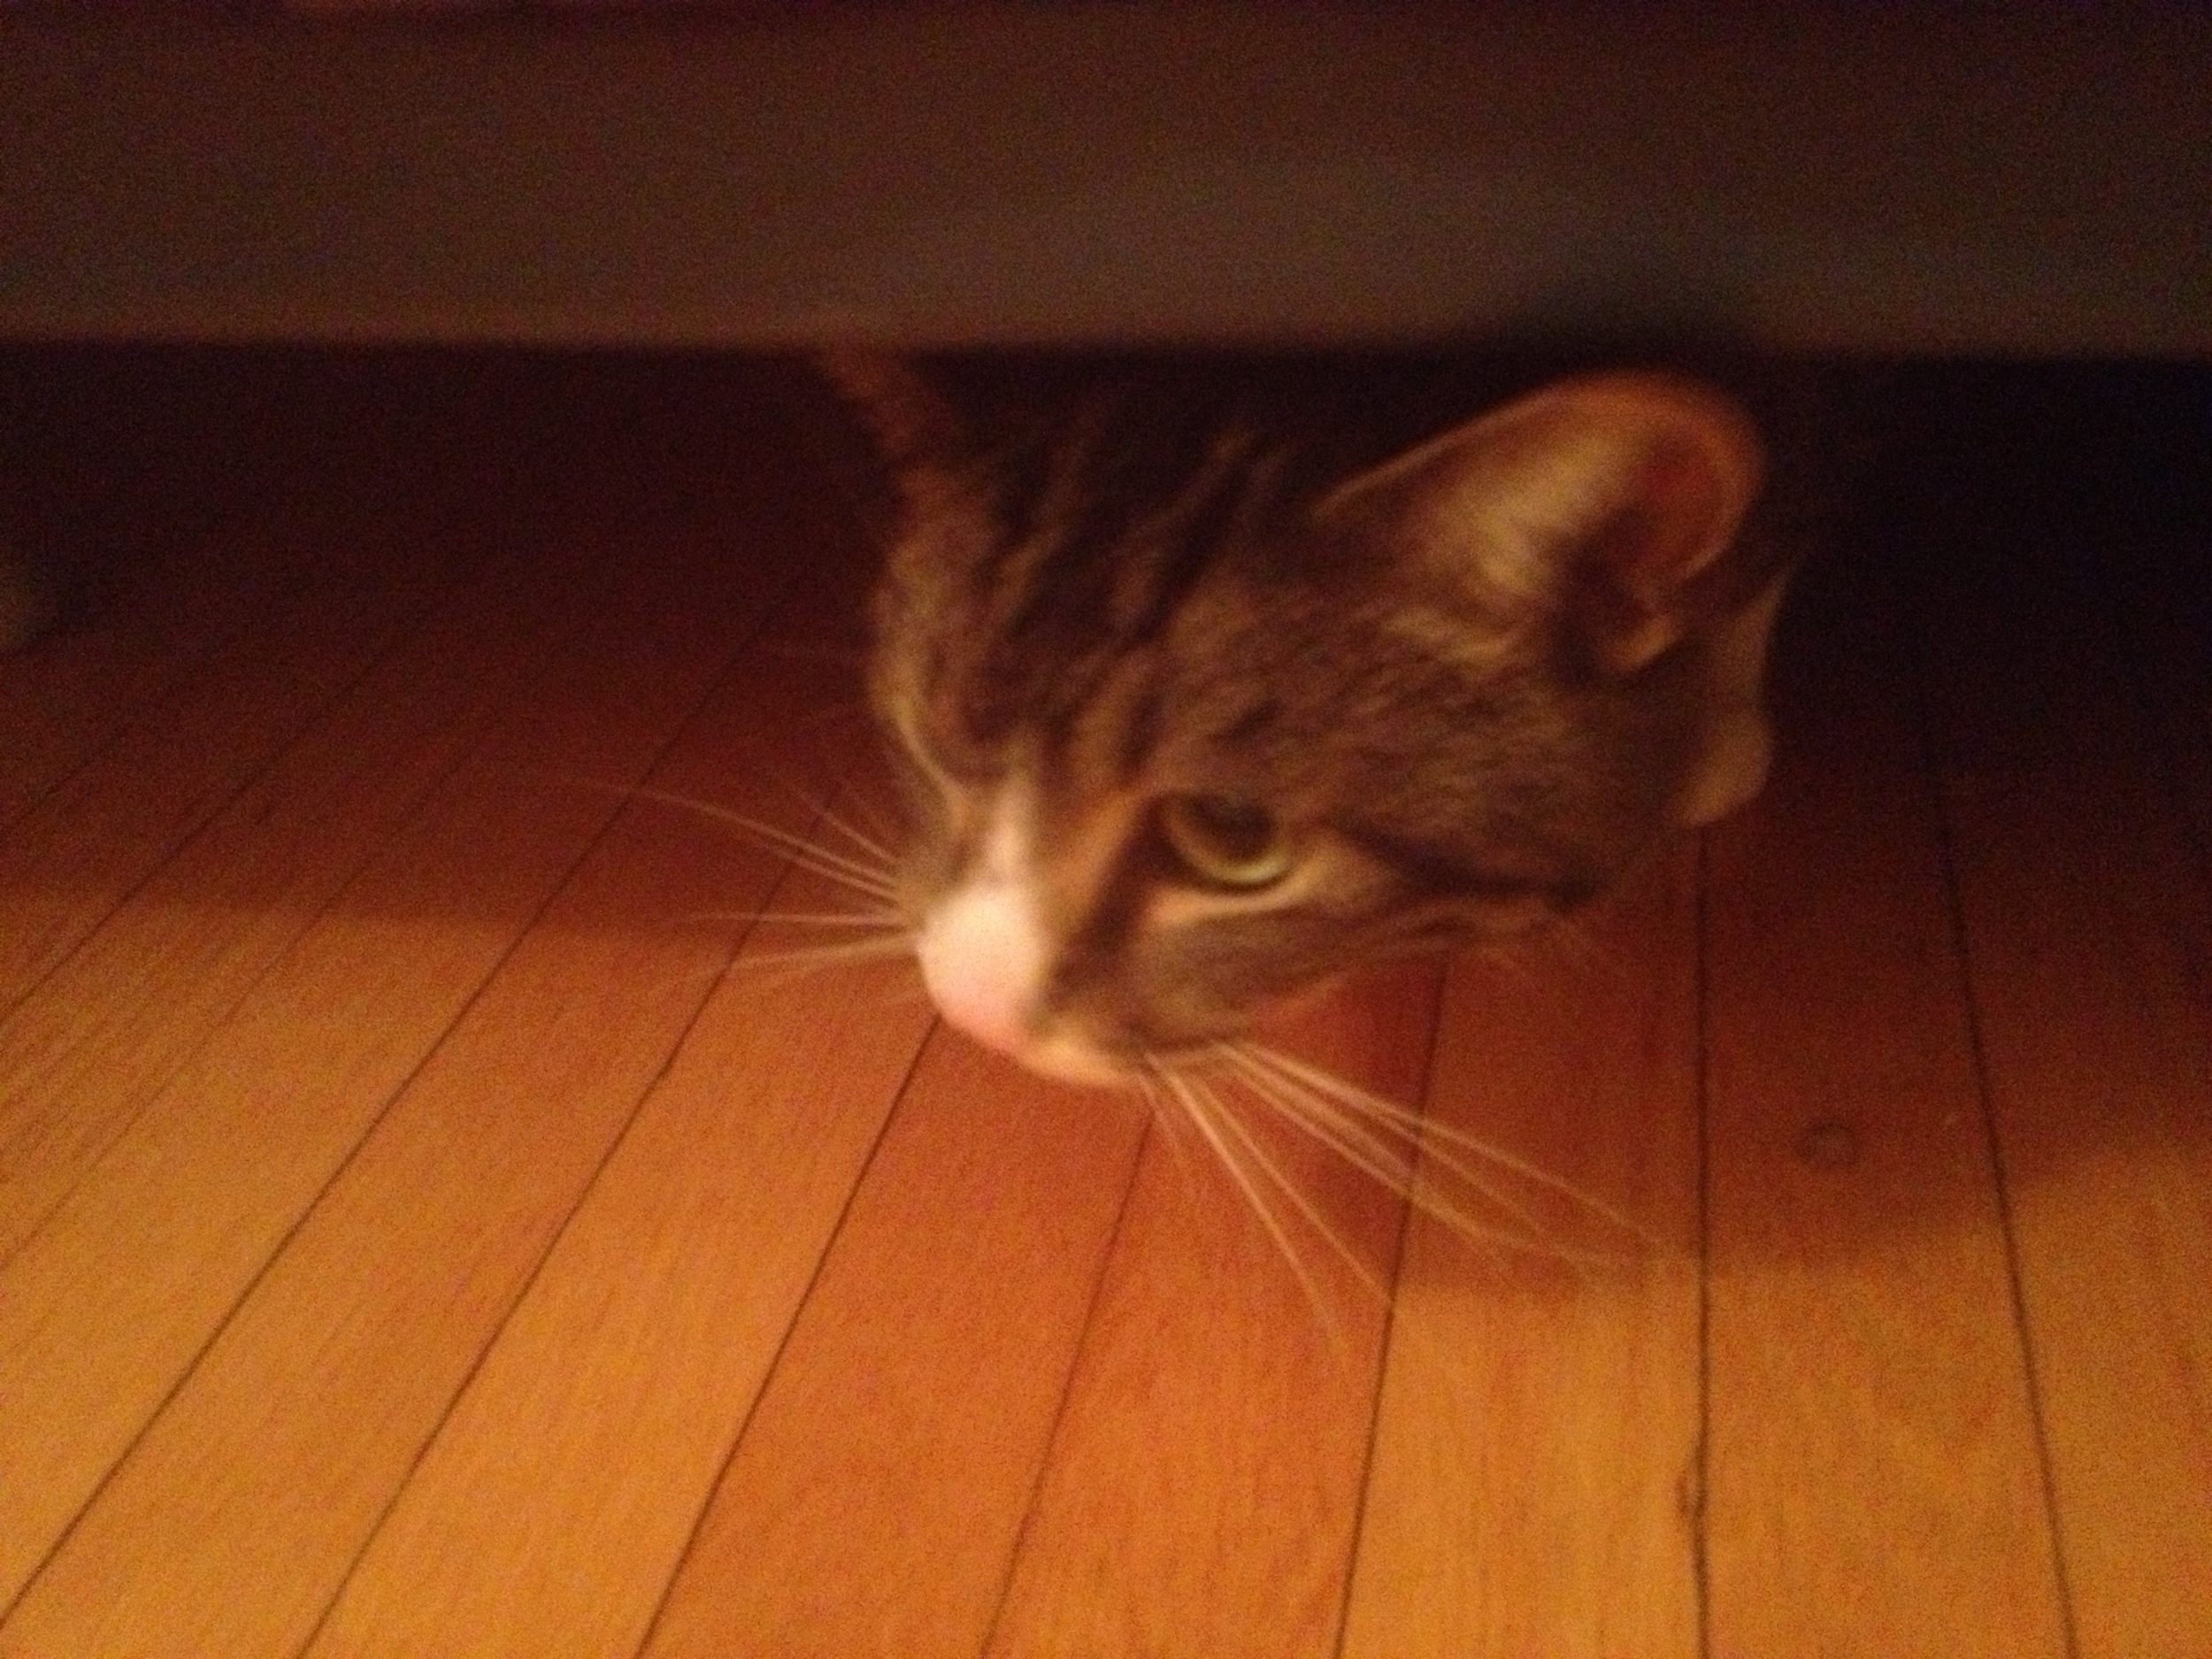 Theo decides it's safe to venture out from under the bed